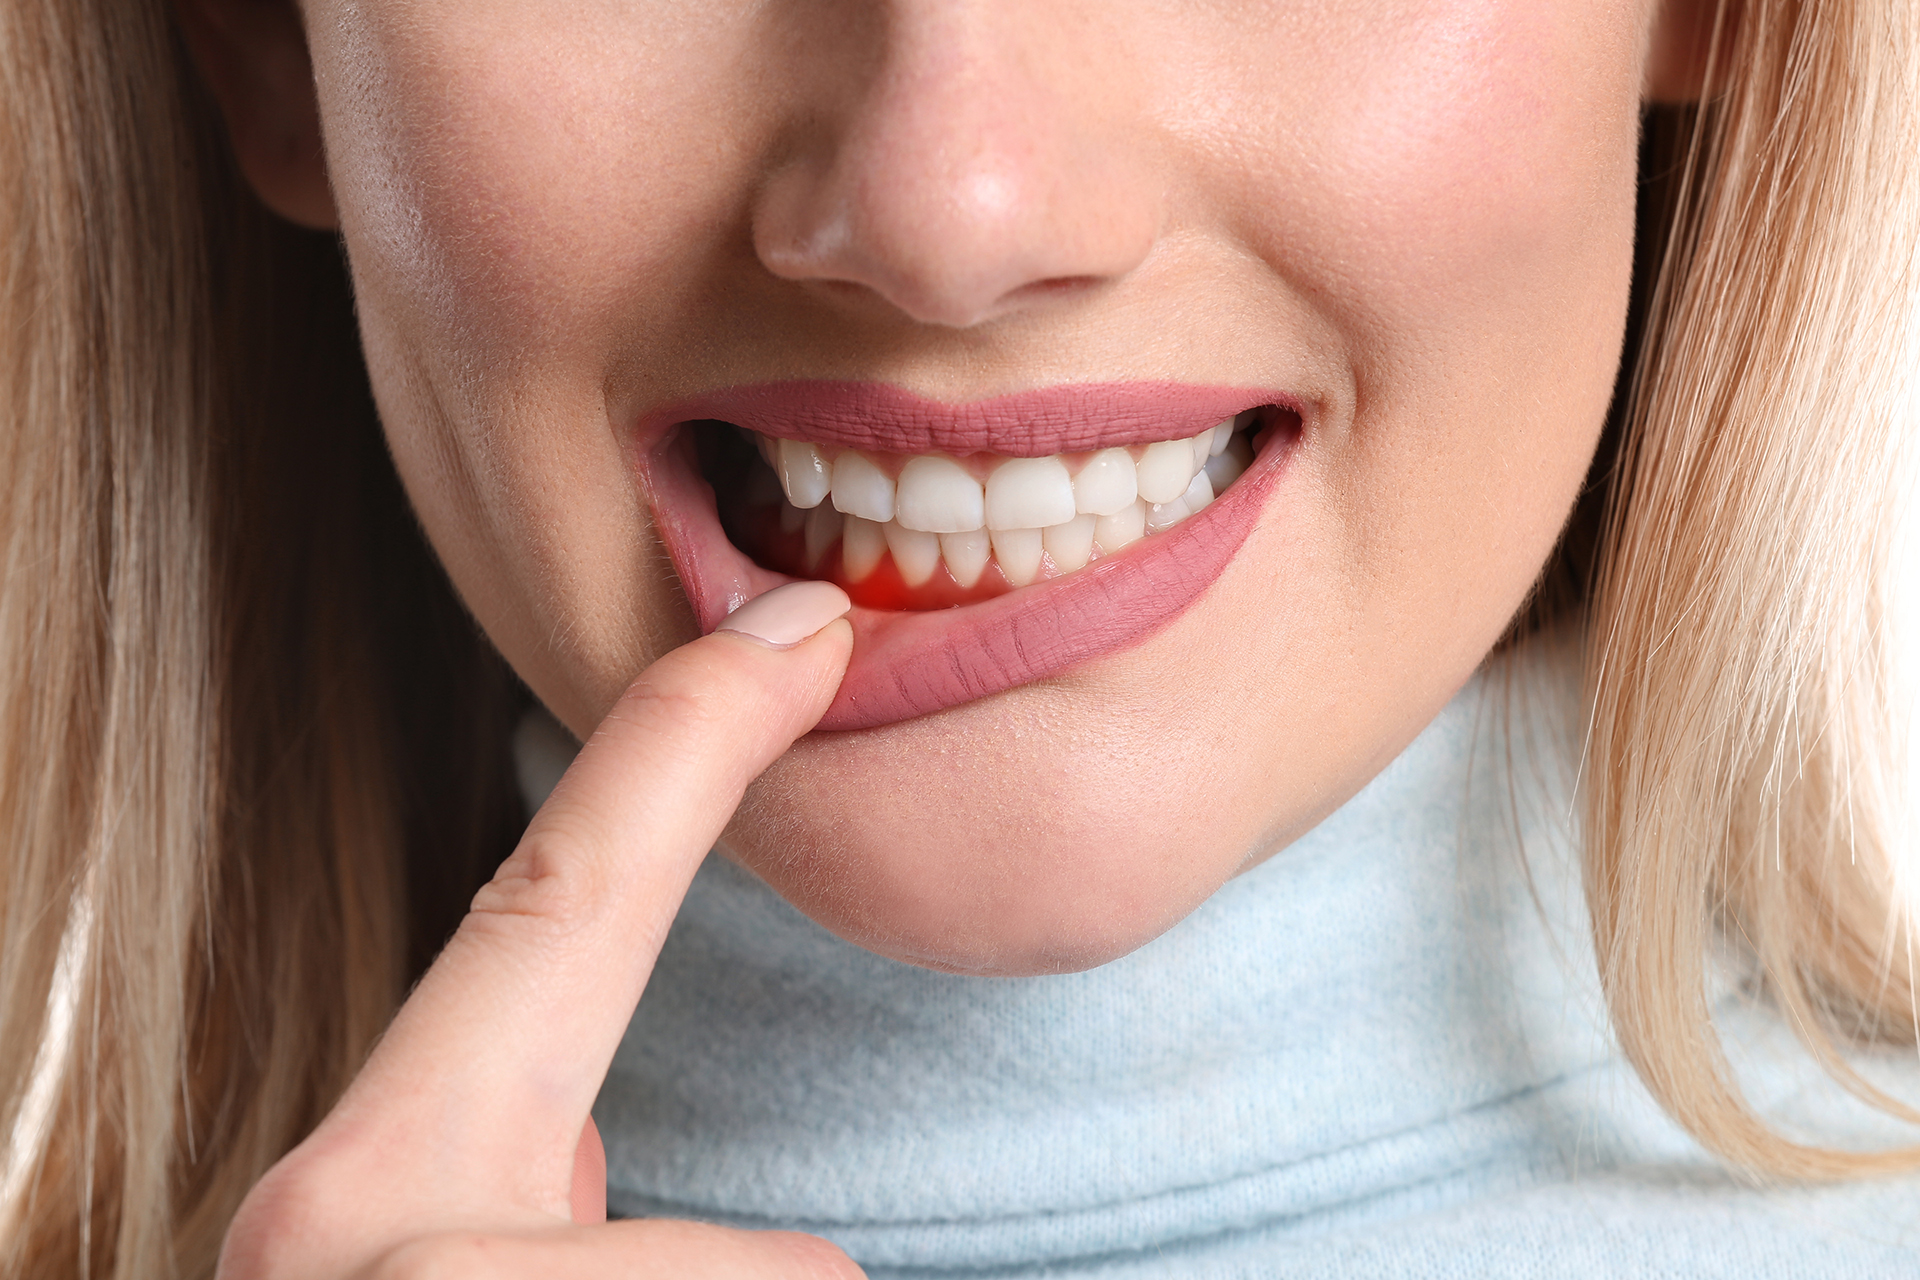 Gingivitis: What exactly is it, and how can you get rid of it?